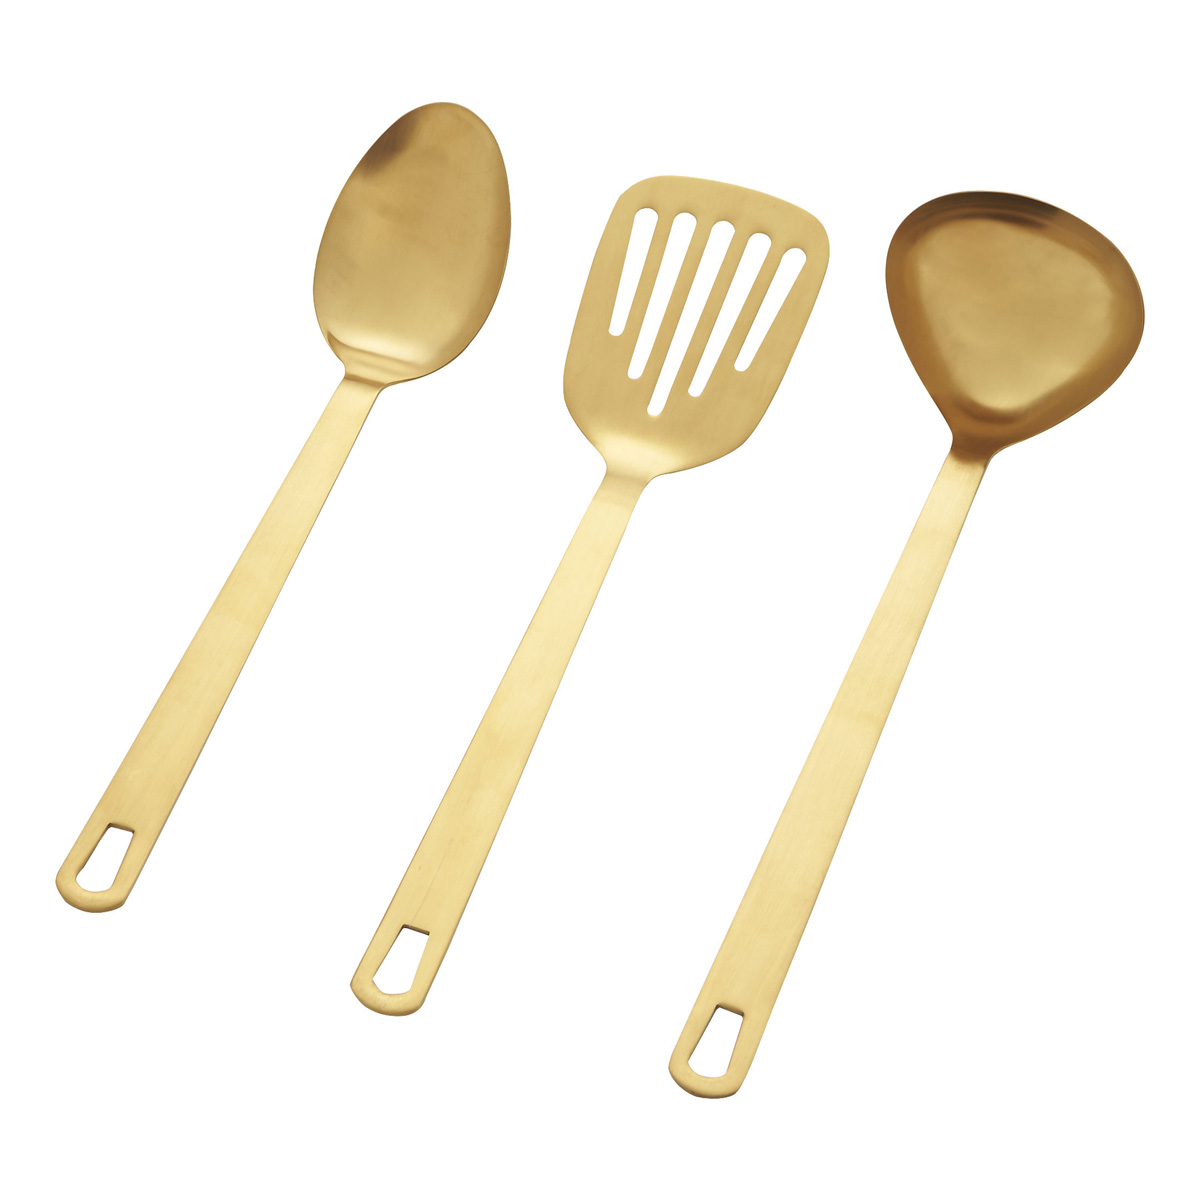 Brushed Gold Kitchen Utensils  The Green Head